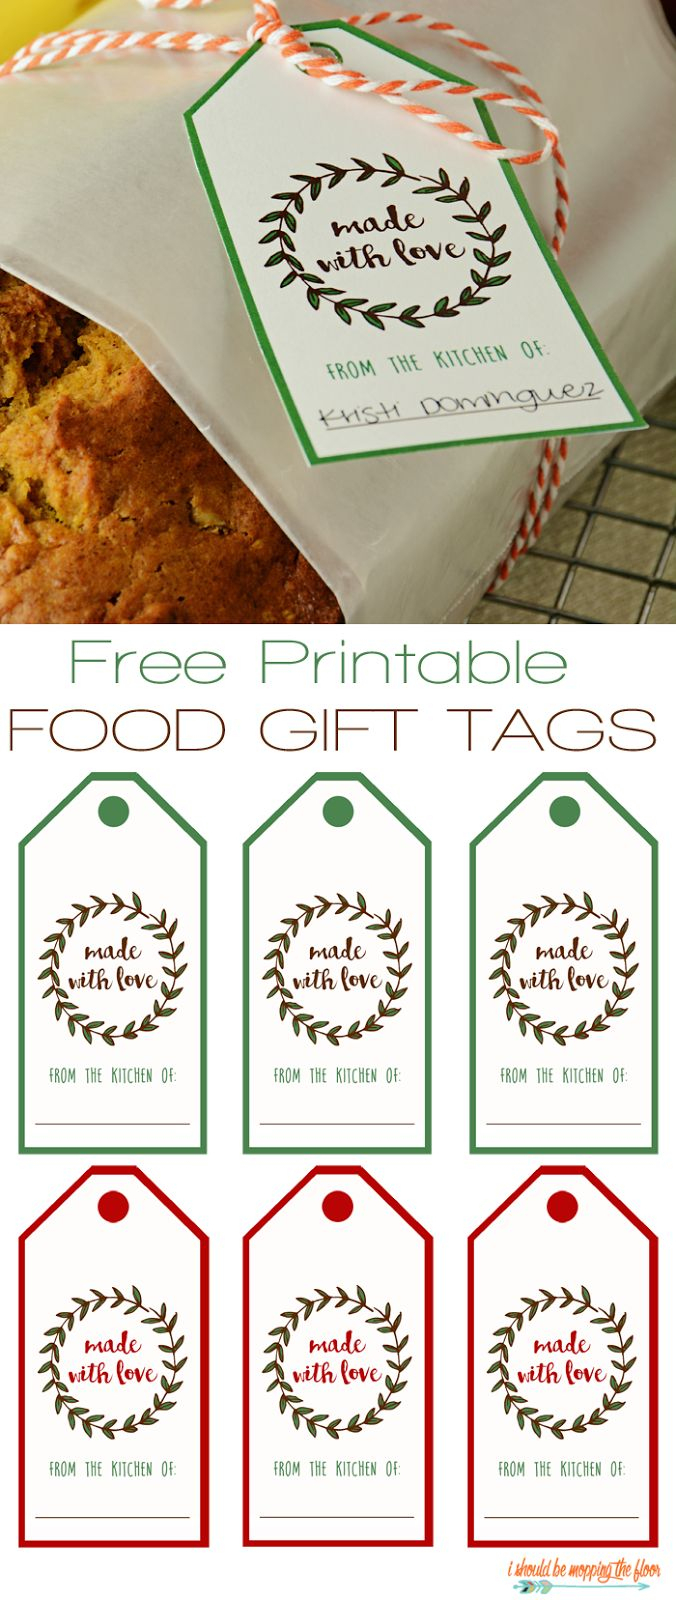 Free Printable Food Gift Tags | ***awesome Things*** | Pinterest - Free Customized Name Tags Printable